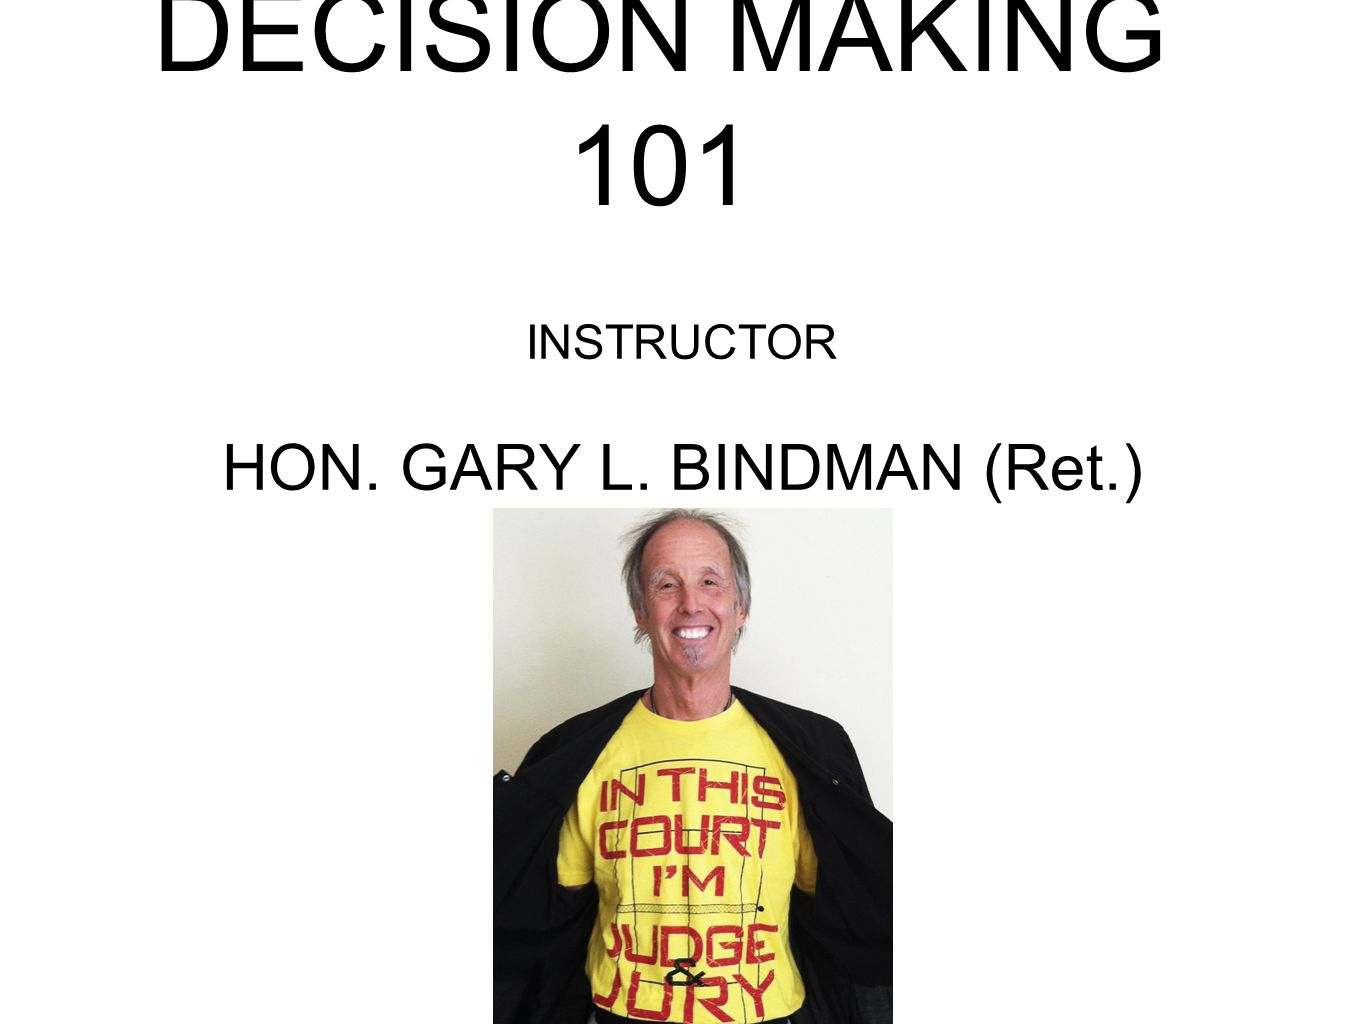 DECISION MAKING 101 INSTRUCTOR HON. GARY L. BINDMAN (Ret.)